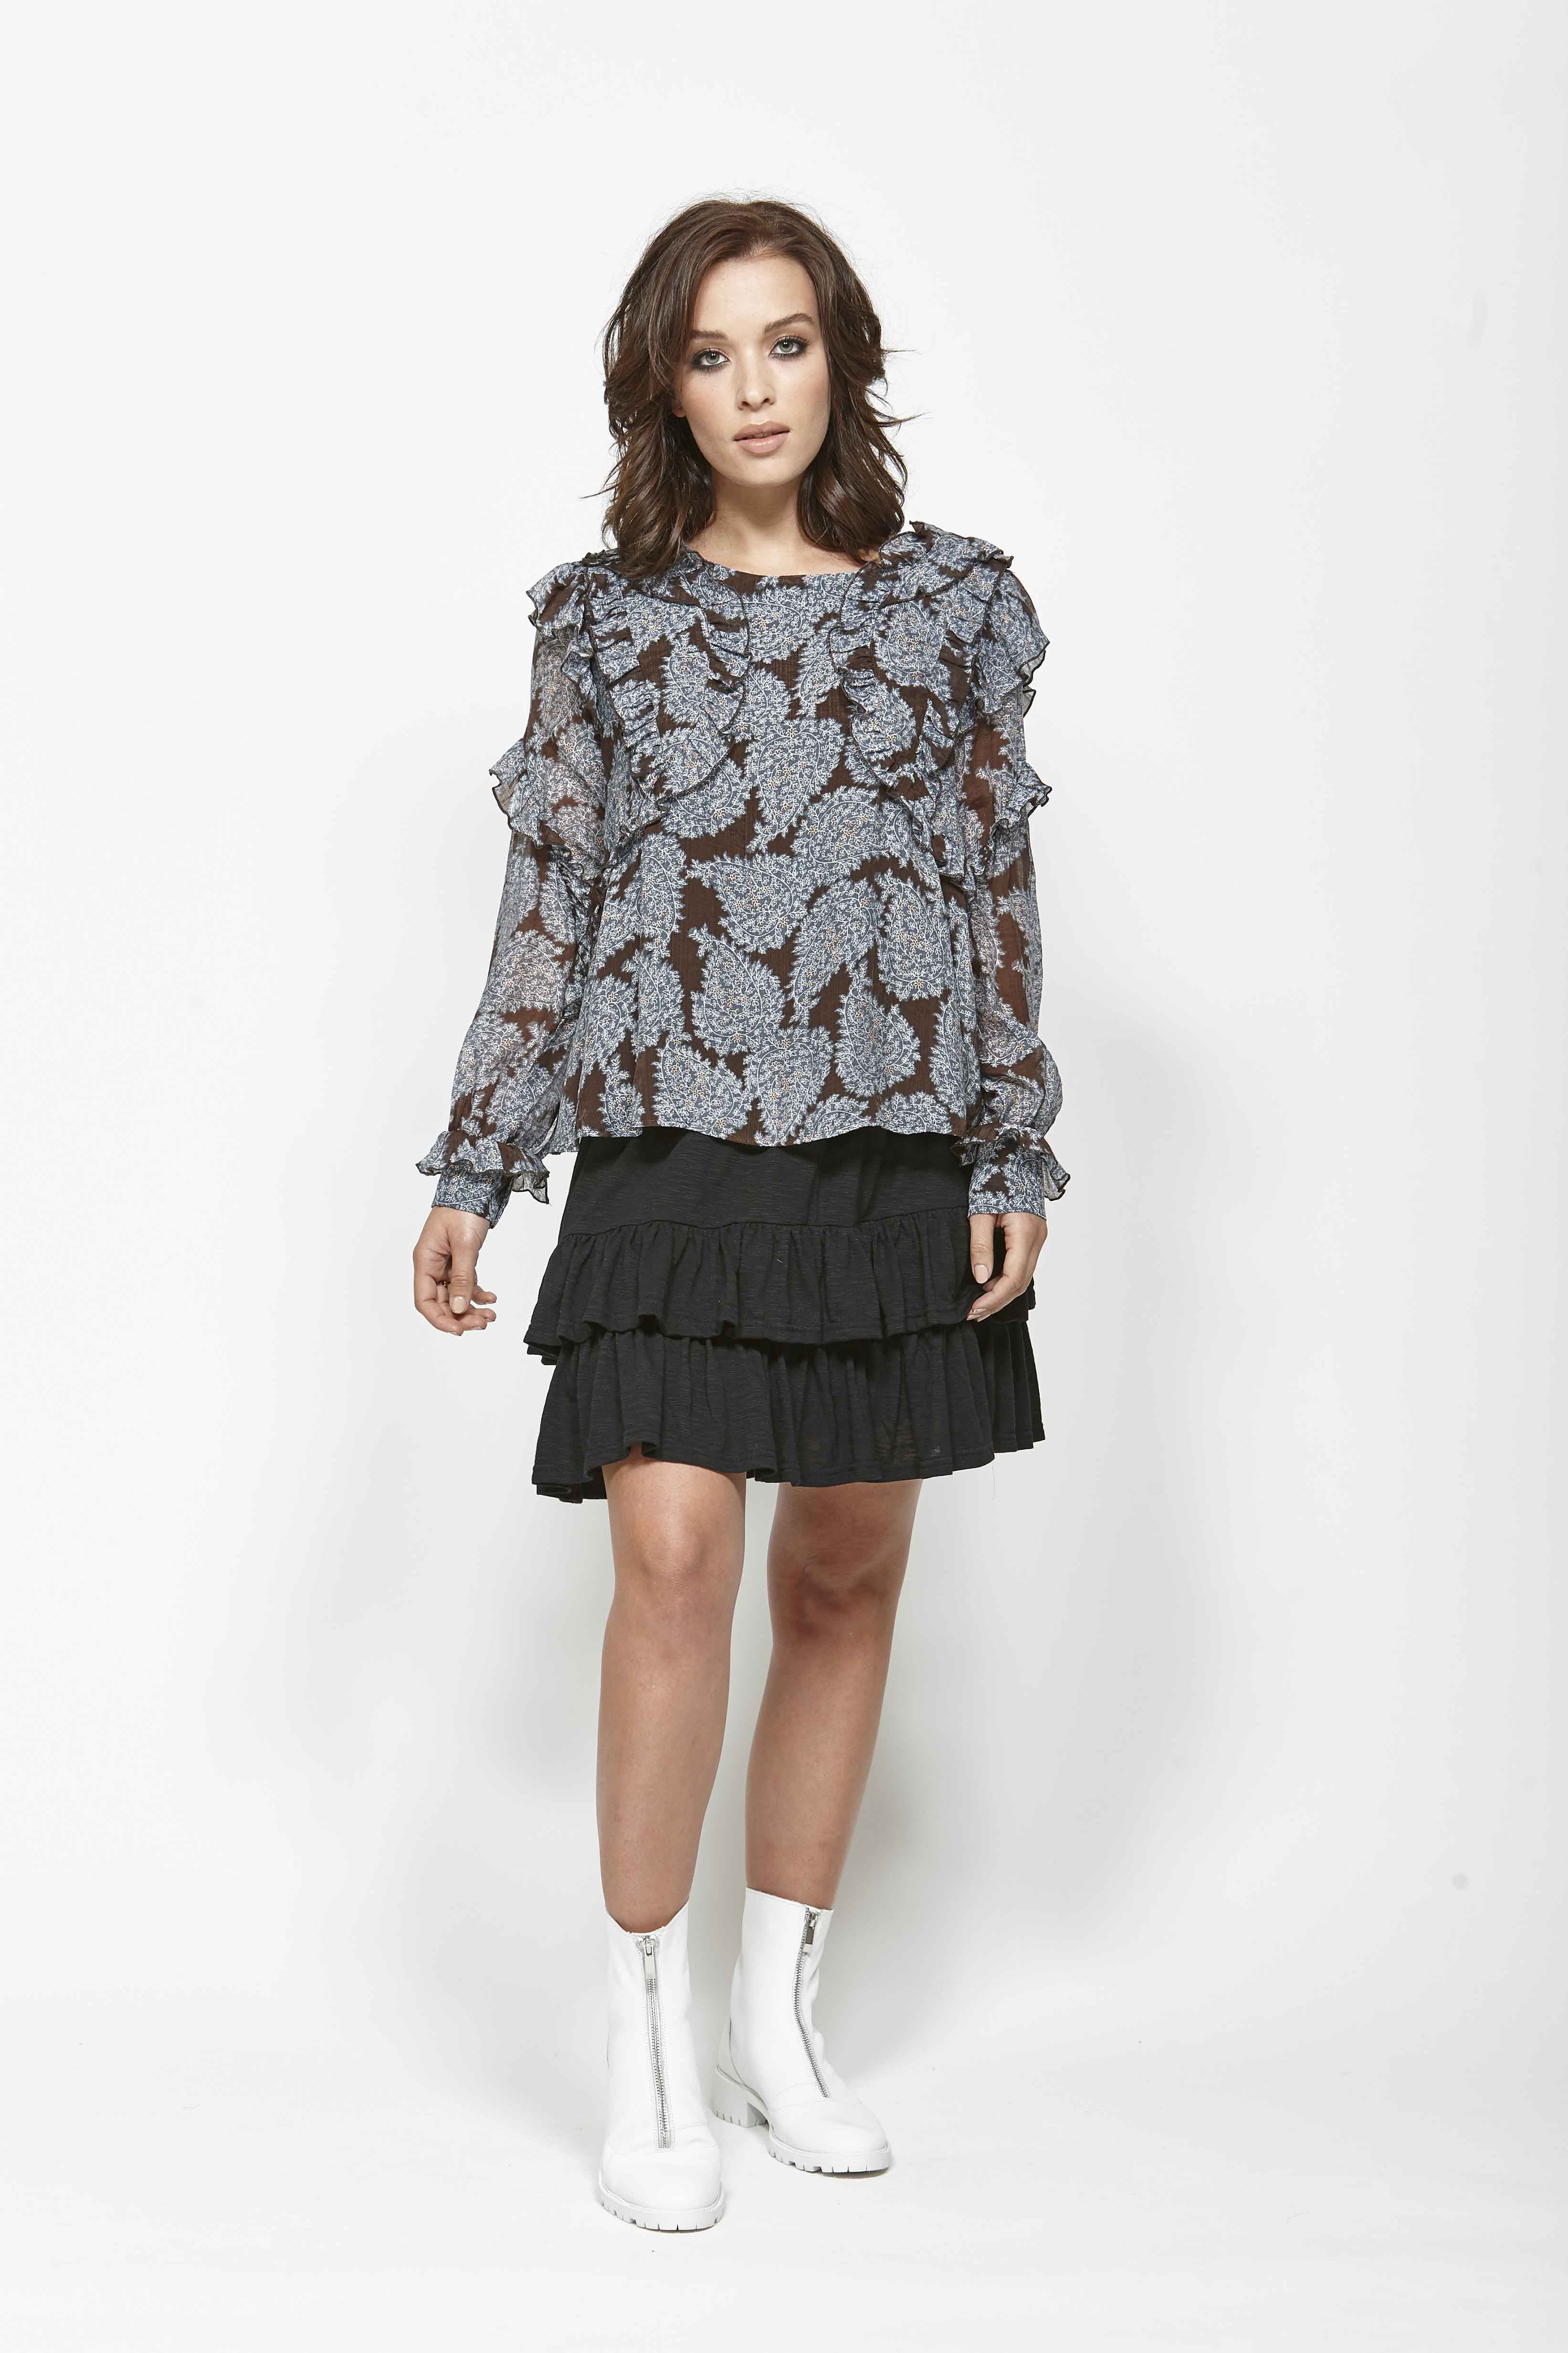 LEO+BE LB1368 Space Shirt, RRP$159.00 & LEO+BE LB1357 Sub Skirt, RRP$135.00 (2)